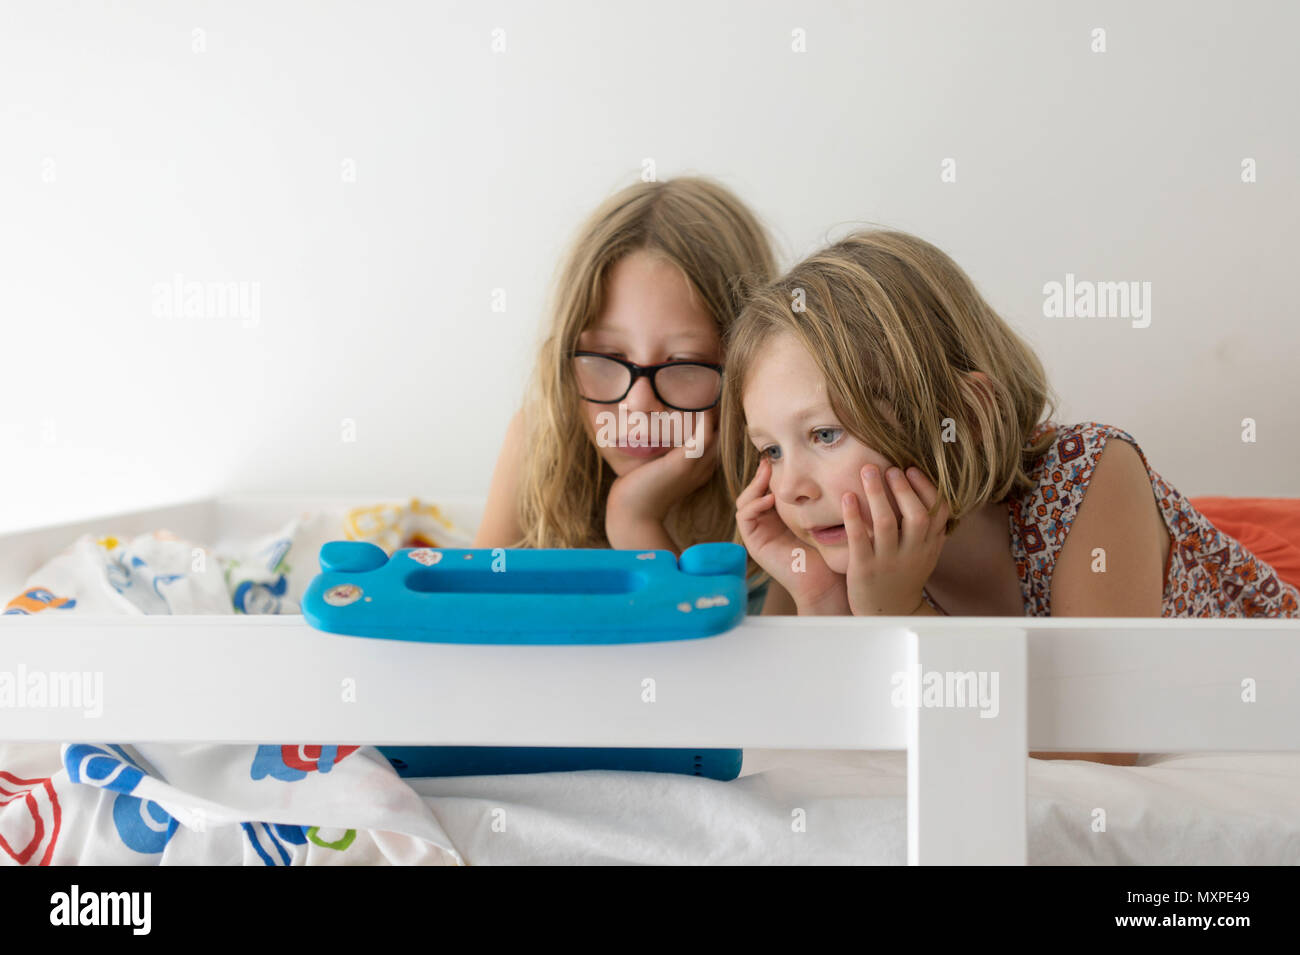 Two female children watching the tablet on the top bunk - Stock Image